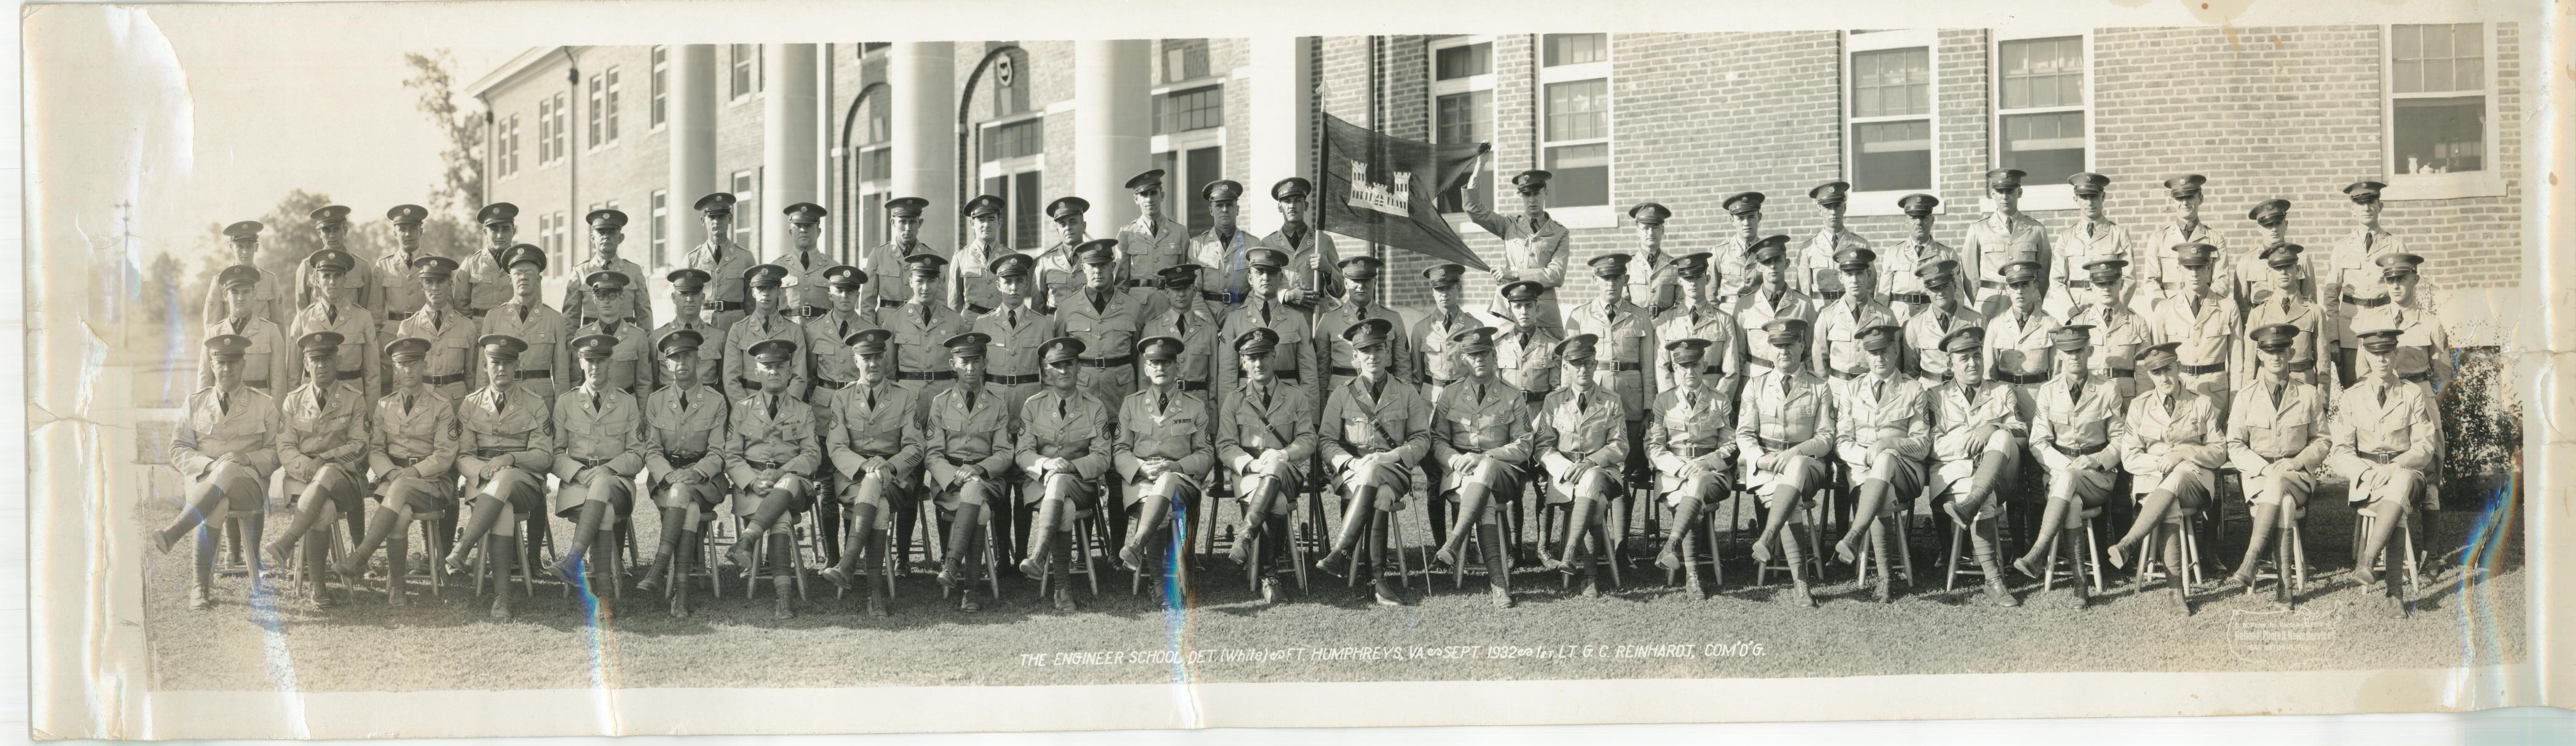 The Engineer School Det., Ft. Humphreys, VA, Sept. 1932, Lt. G.C. Reinhardt, Com'd'g.